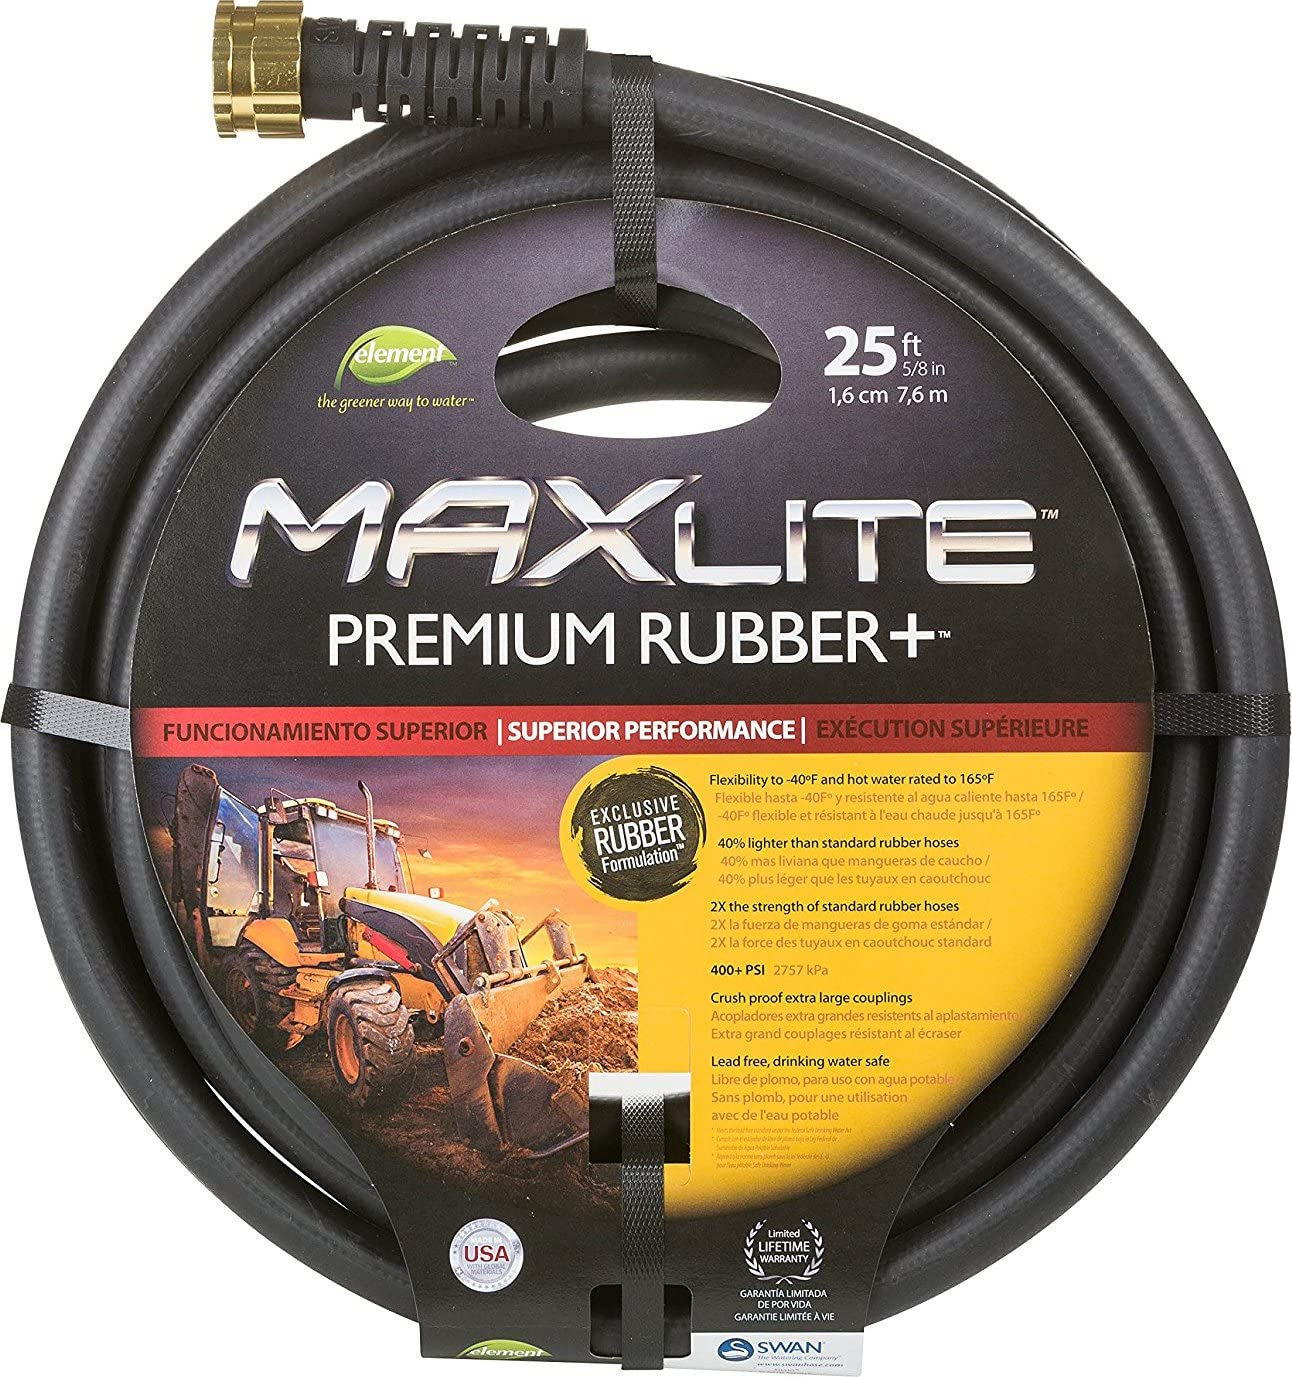 """Swan Products CELSGC58025 Element MAXLite Premium Rubber+ Water Hose with Crush Proof Couplings 25' x 5/8"""", Black"""